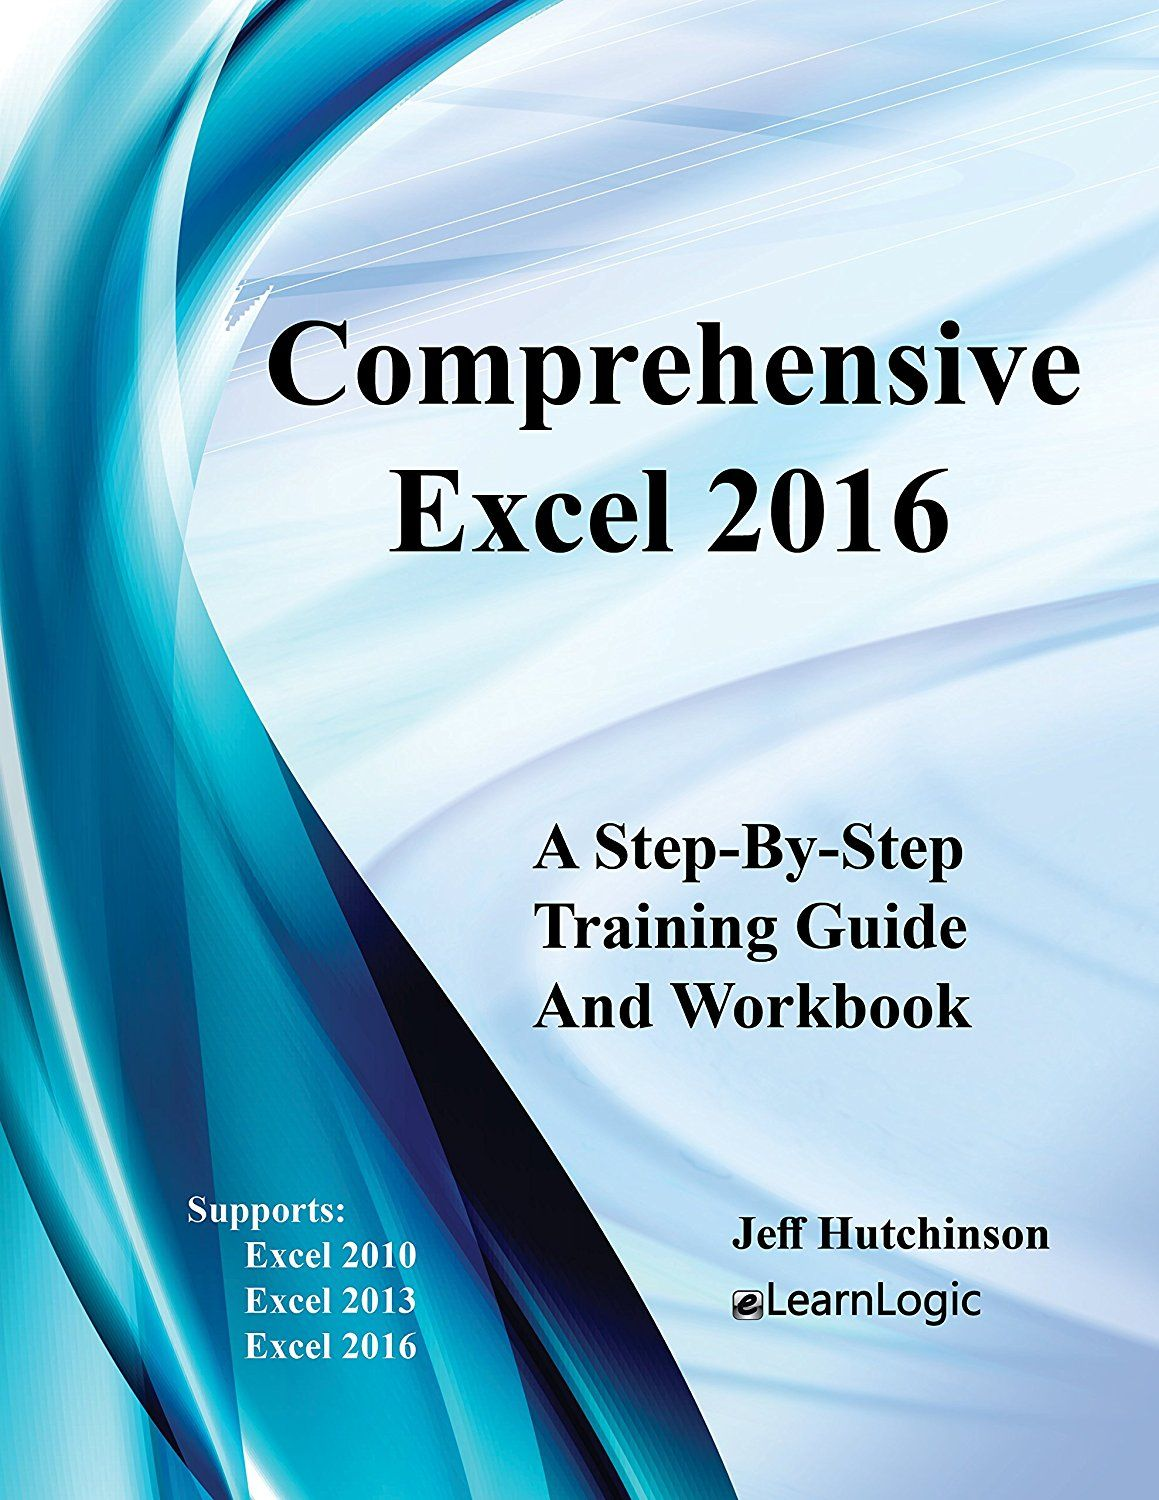 Comprehensive excel 2016 supports excel 2010 2013 and